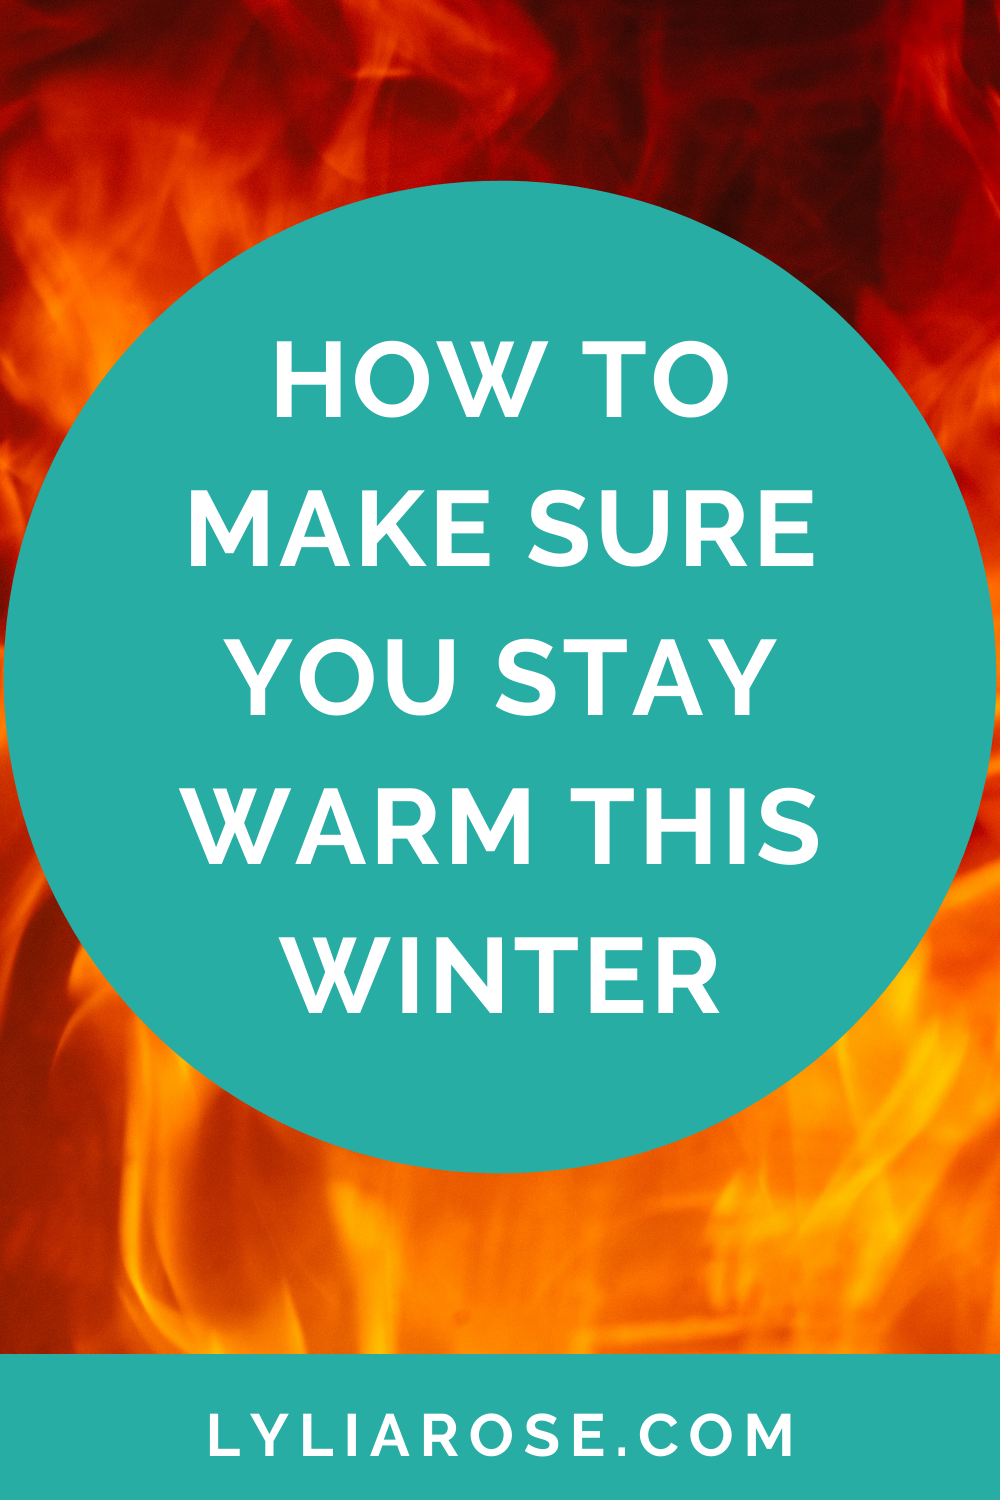 How to make sure you stay warm this winter